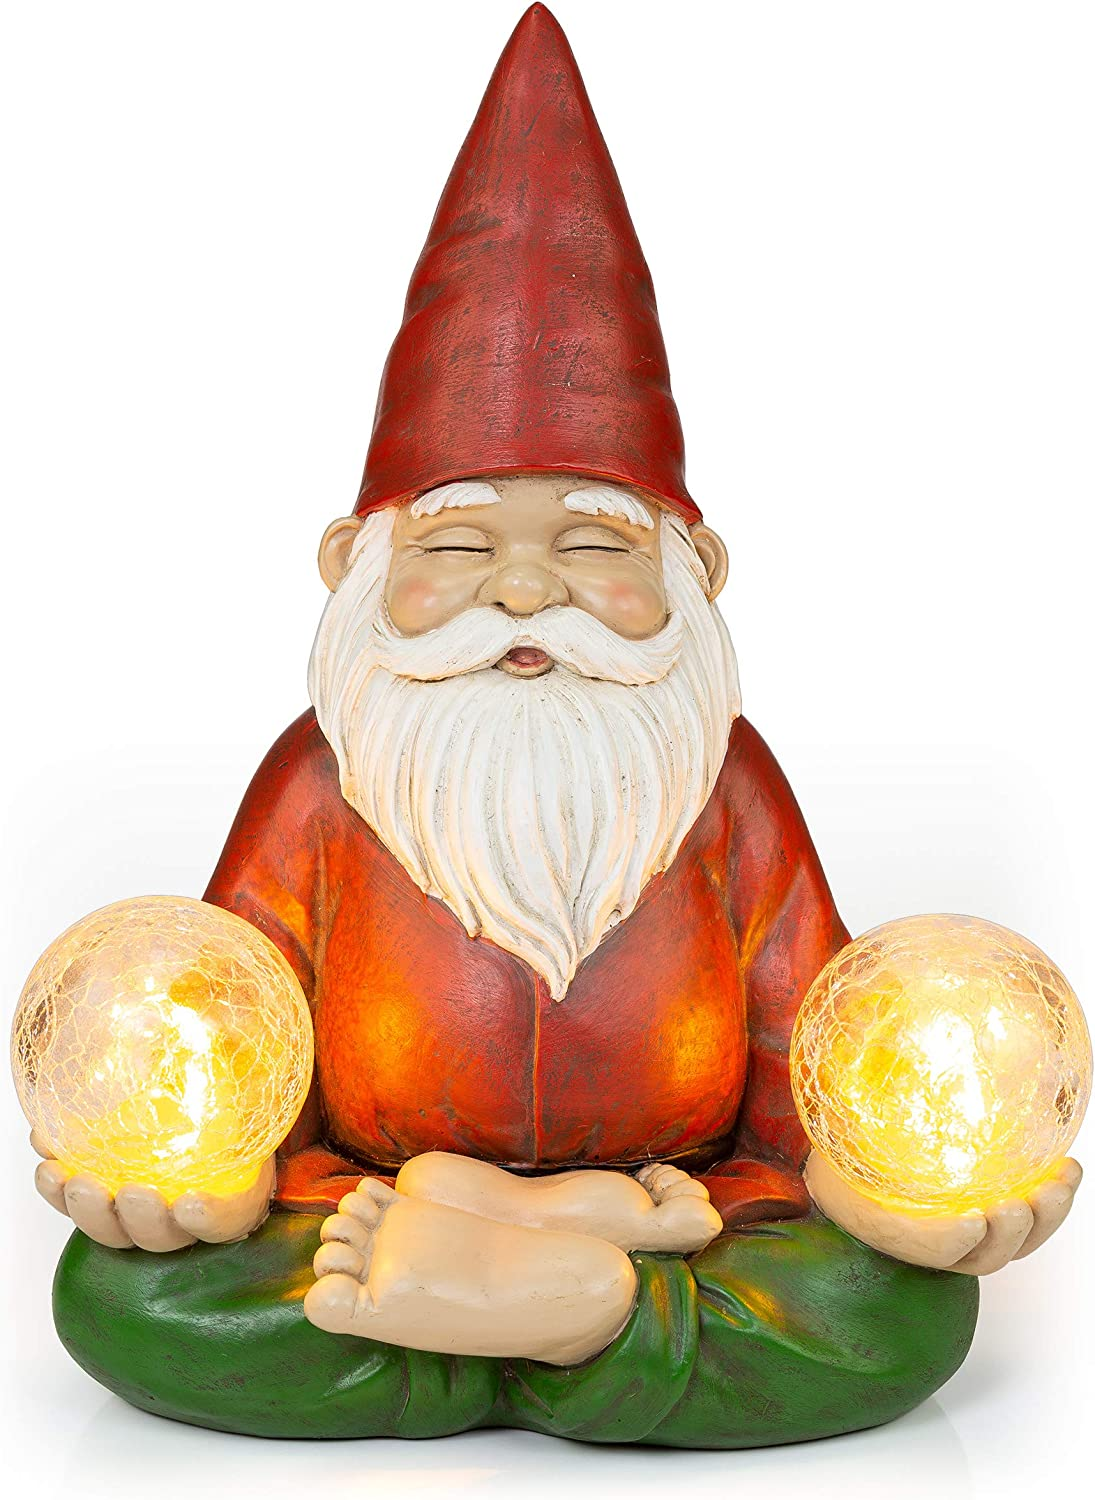 VP Home Zen Yoga Gnome Solar Powered LED Outdoor Decor Garden Light